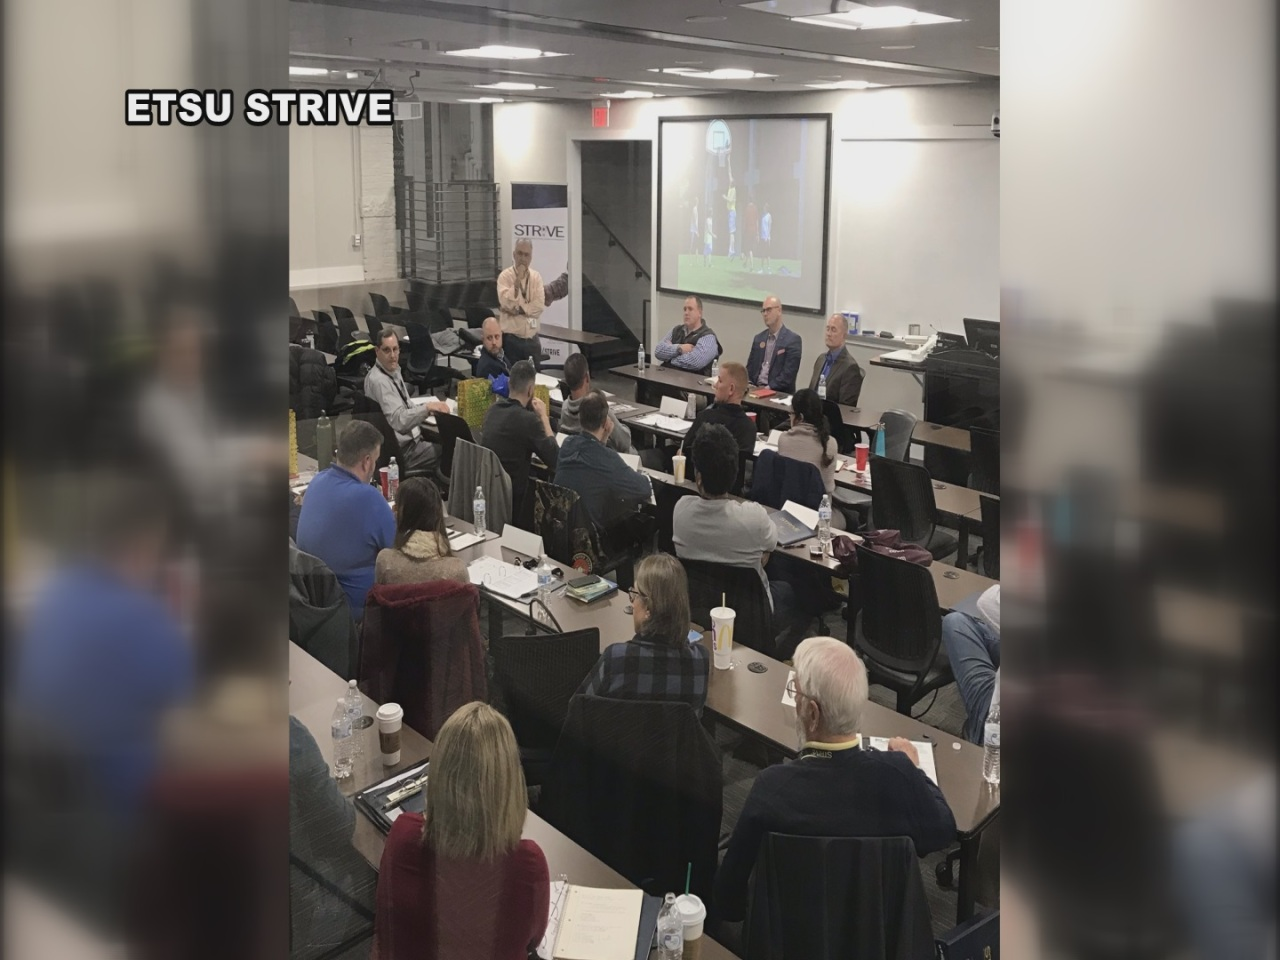 ETSU 'STRIVE' program helps local military families get started in the business world - WJHL-TV News Channel 11